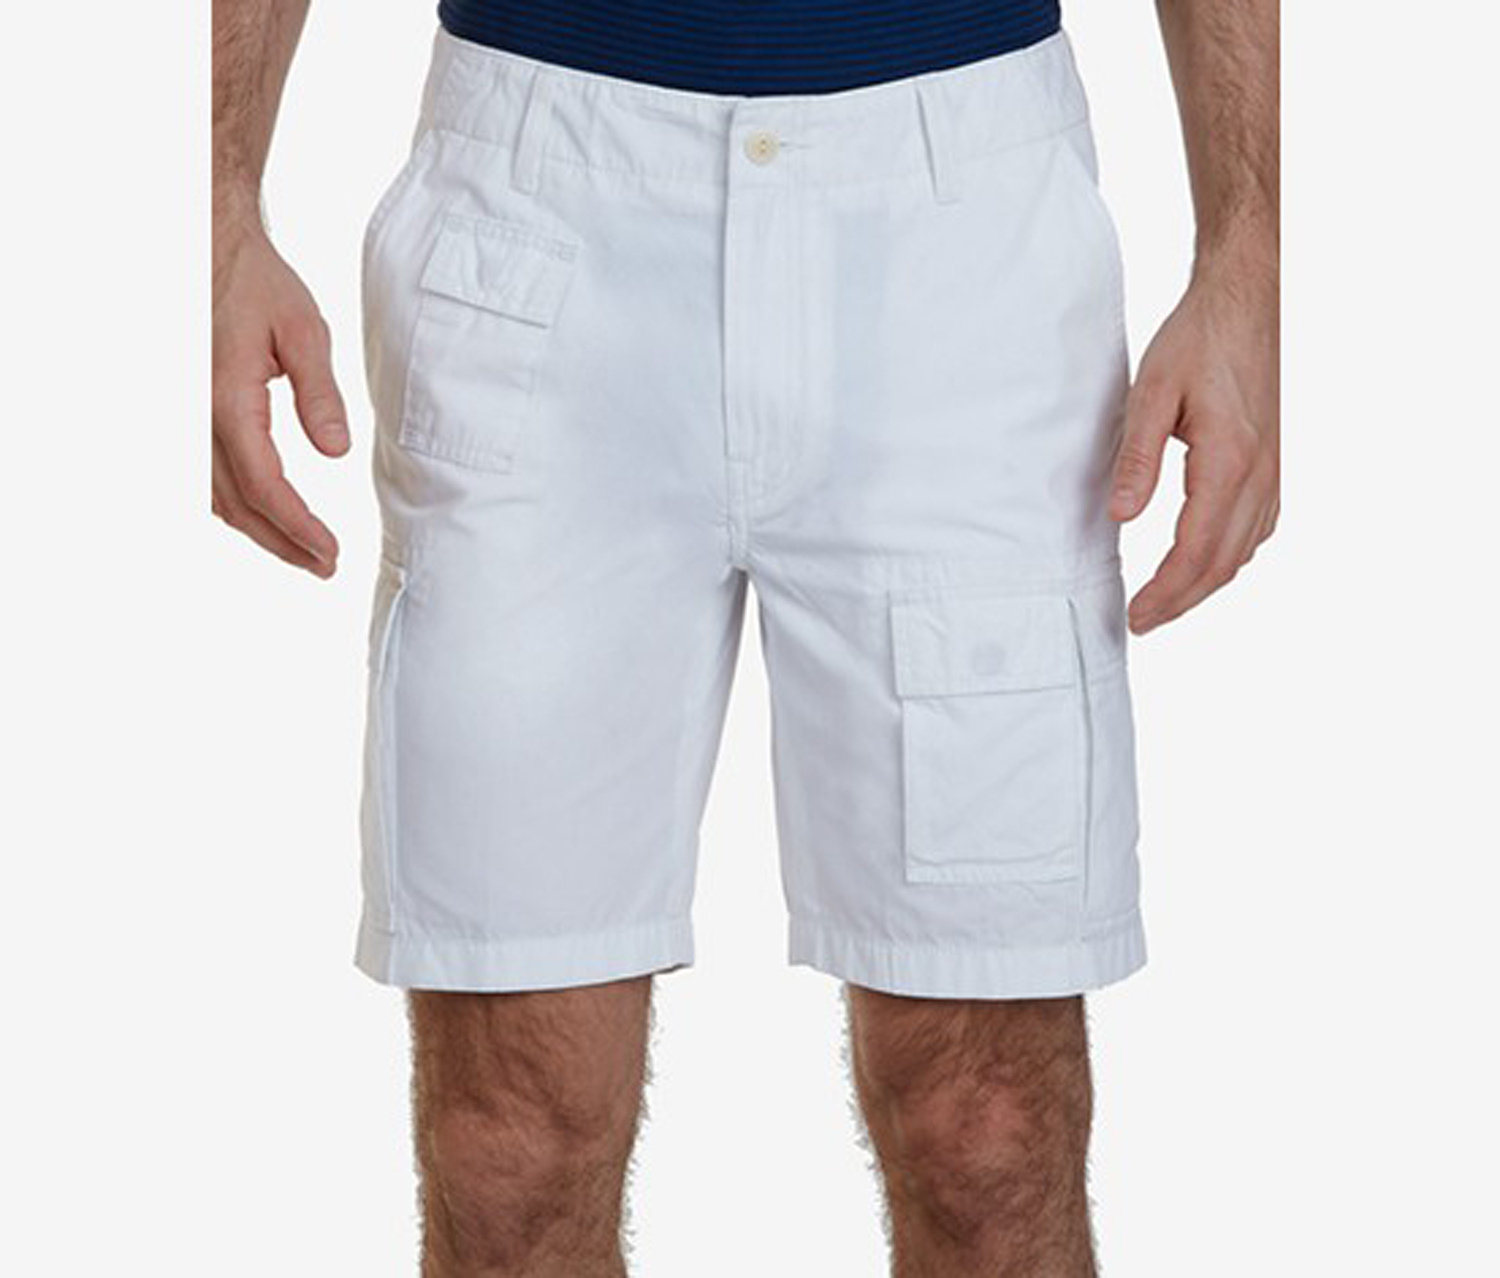 Nautica Mens Navigator Cotton Cargo Shorts, Bright White